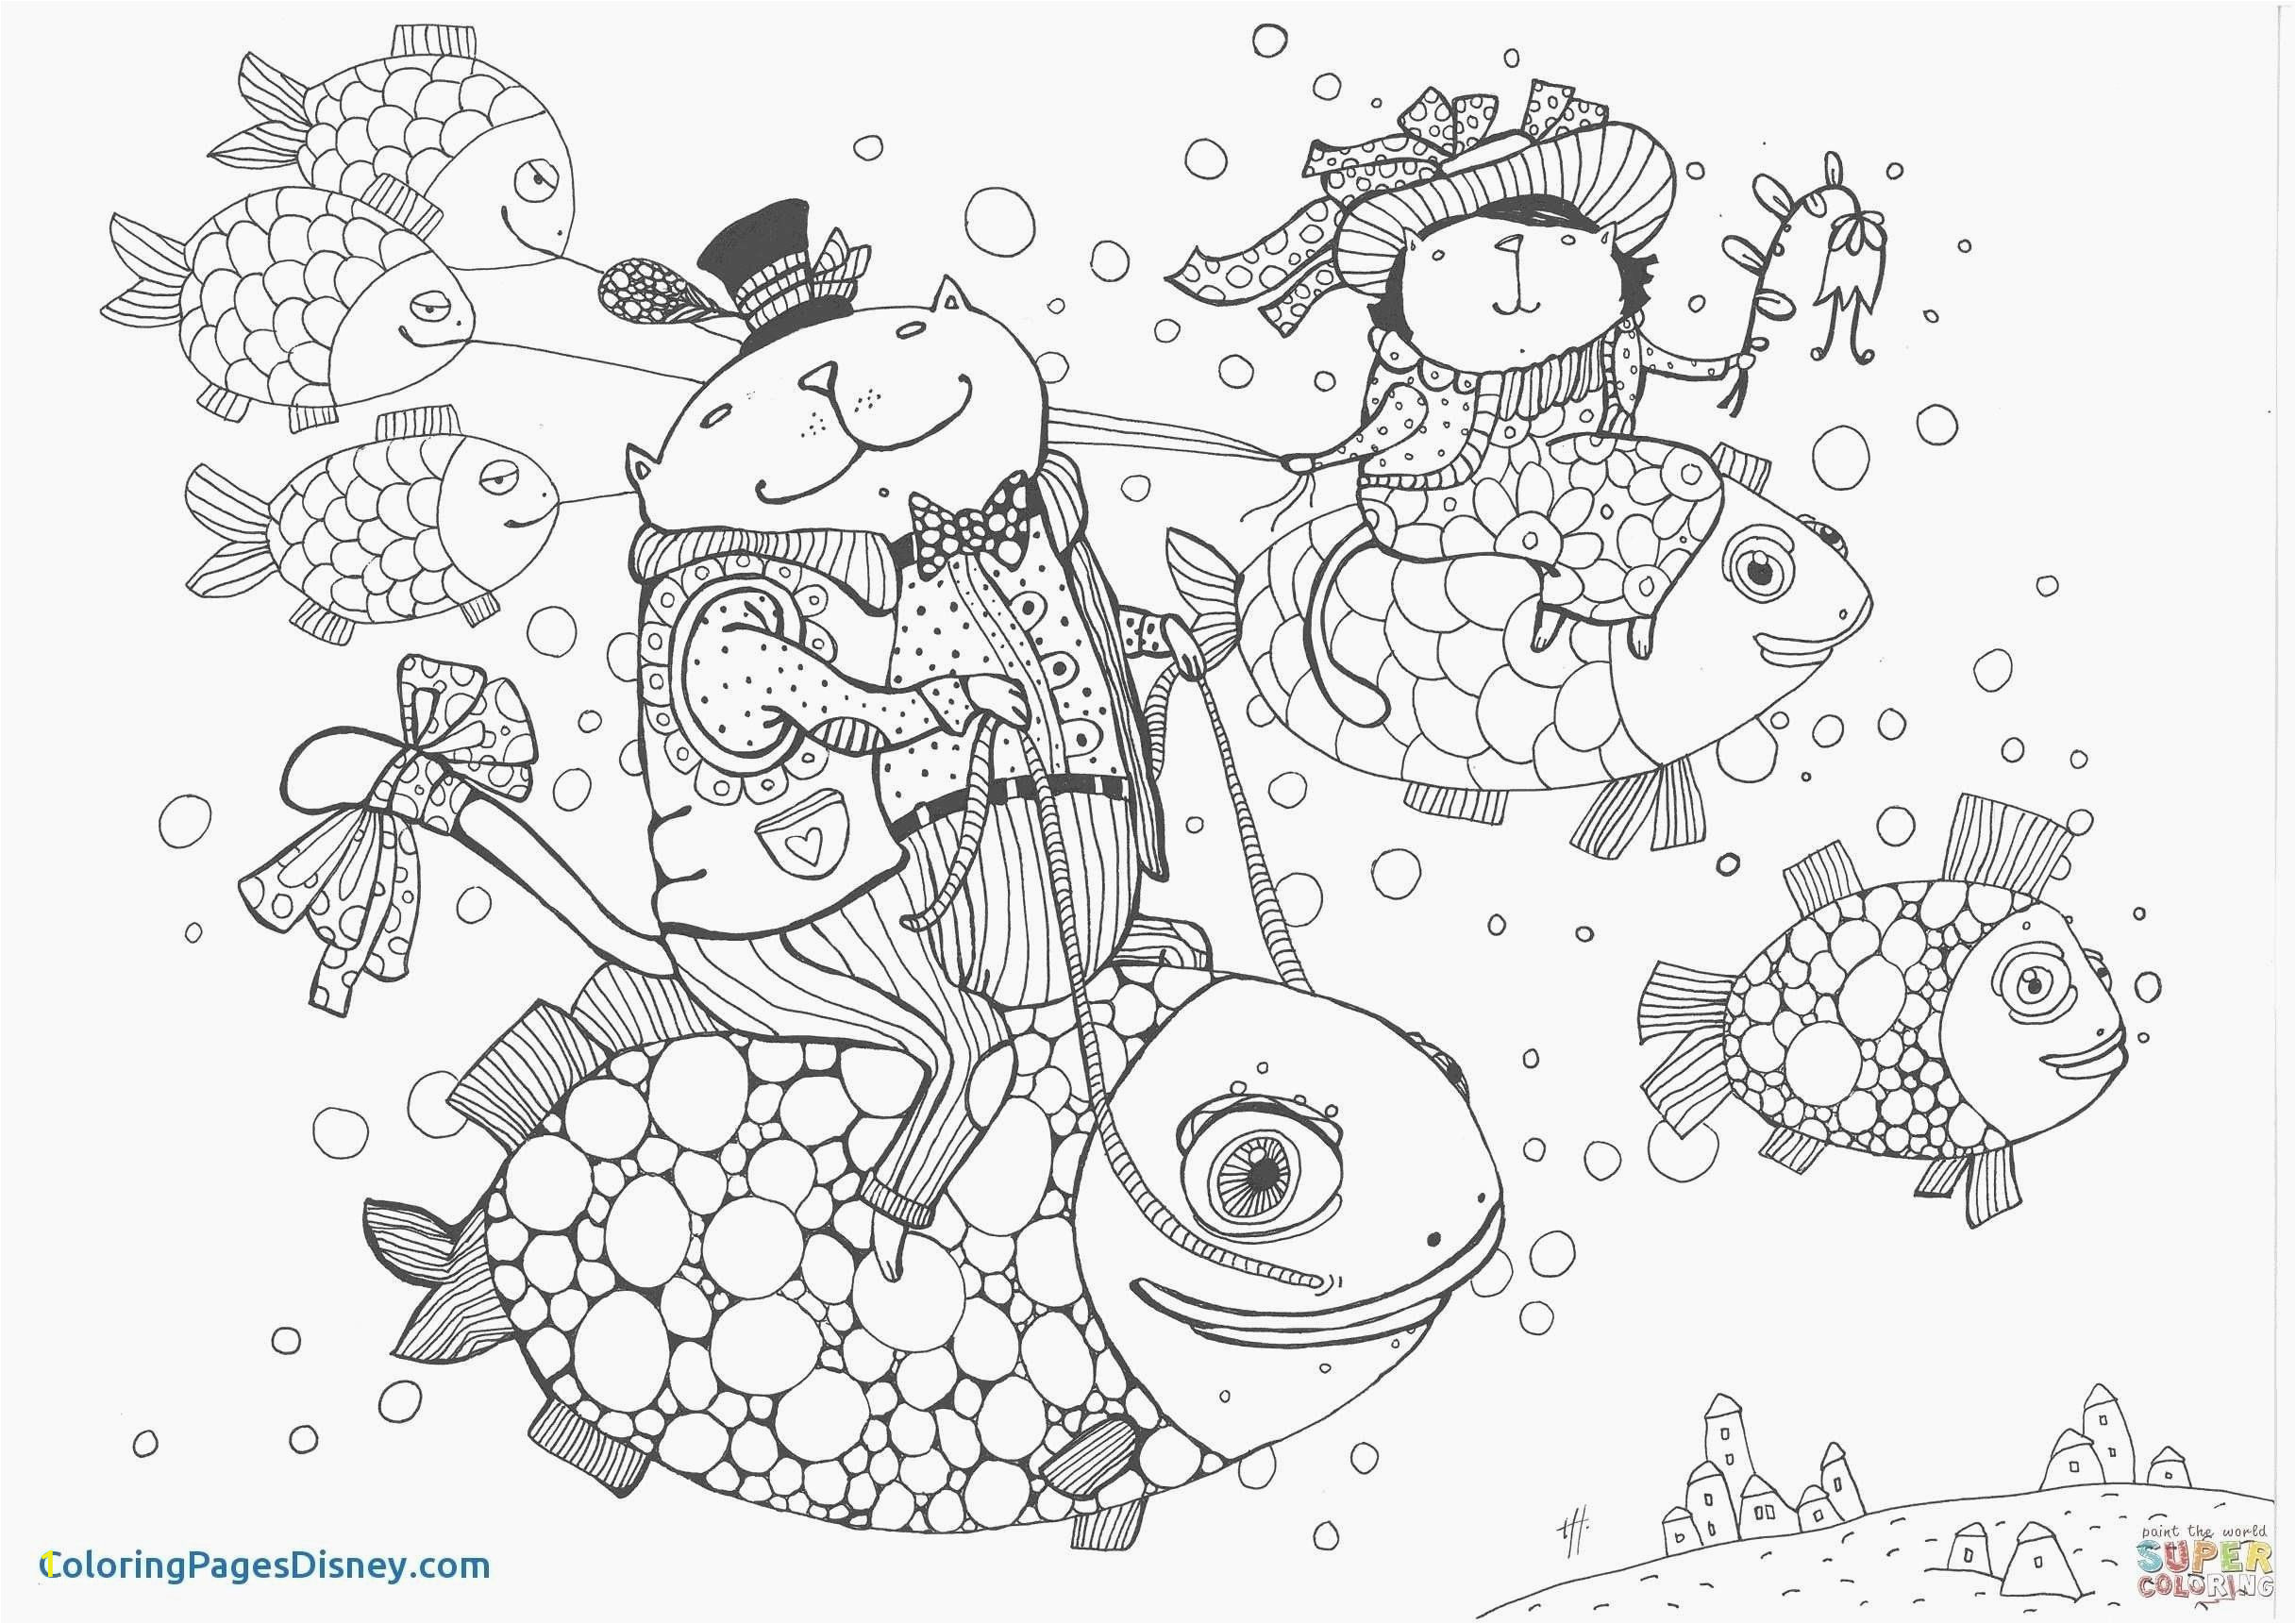 Free Disney Coloring Pages for Adults Coloring Pages Free Disney Coloring Pages for Adults Free